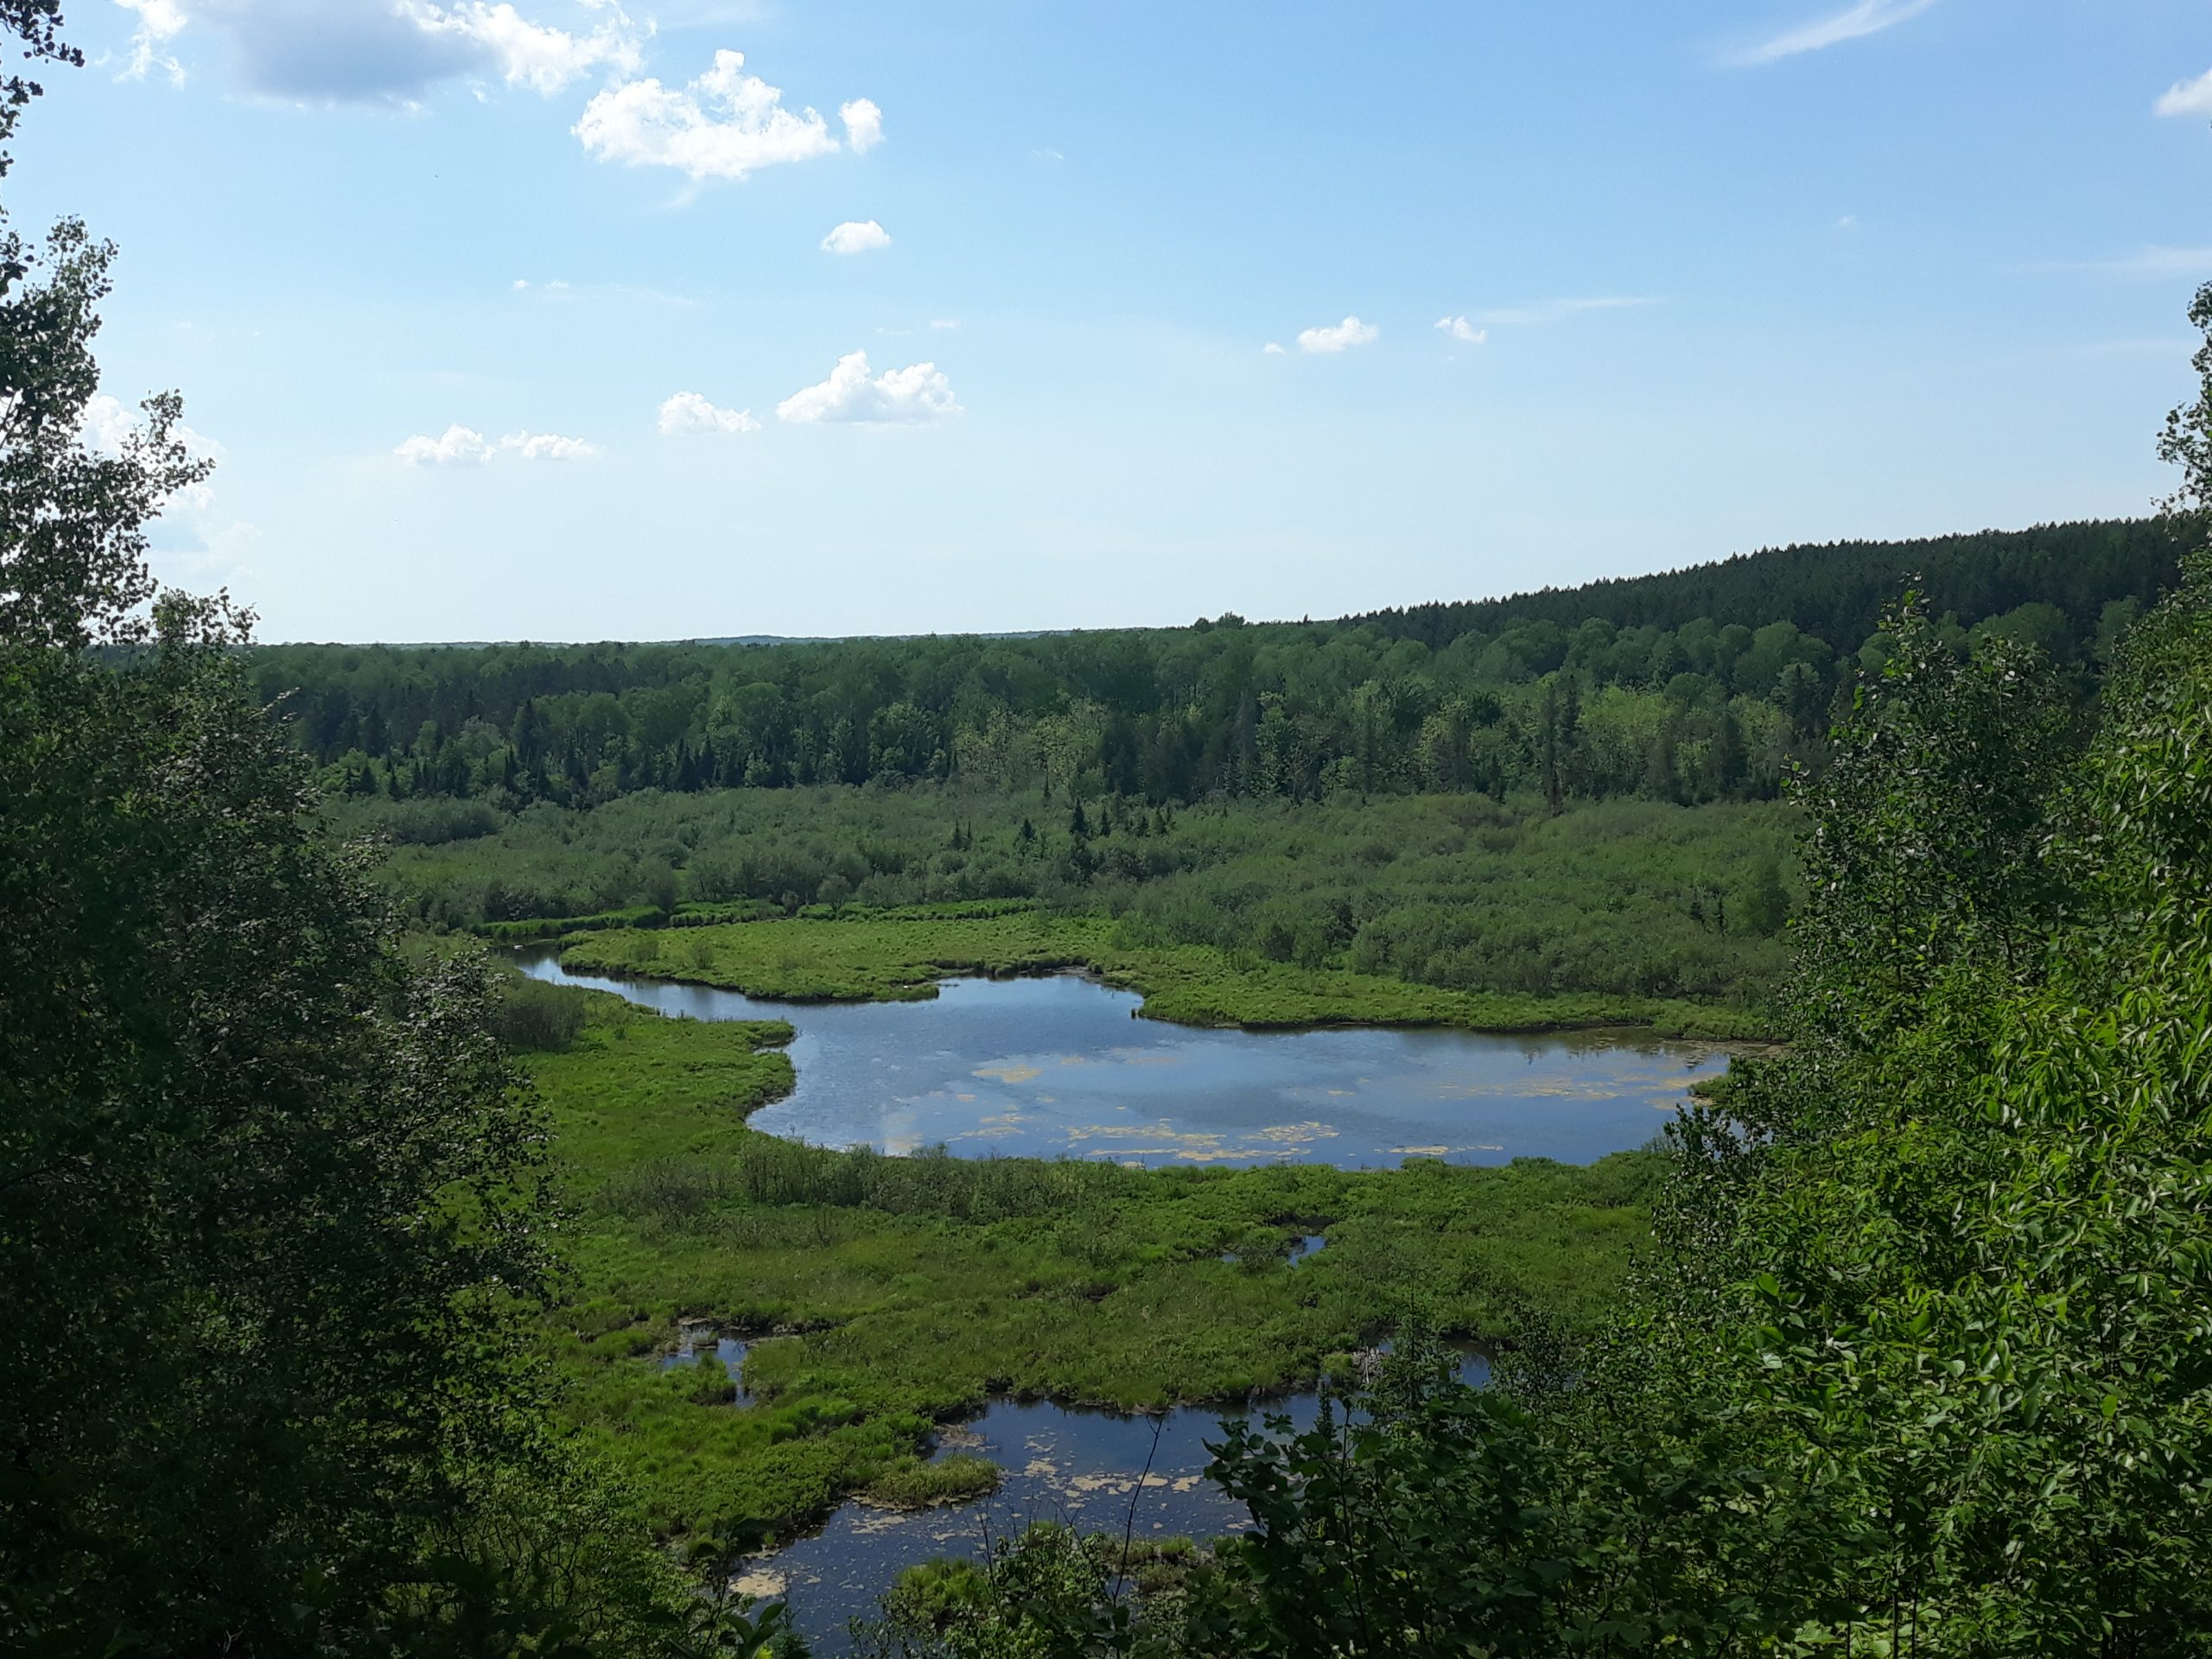 Picture of a small lake surrounded by dense greenery and a blue sky.